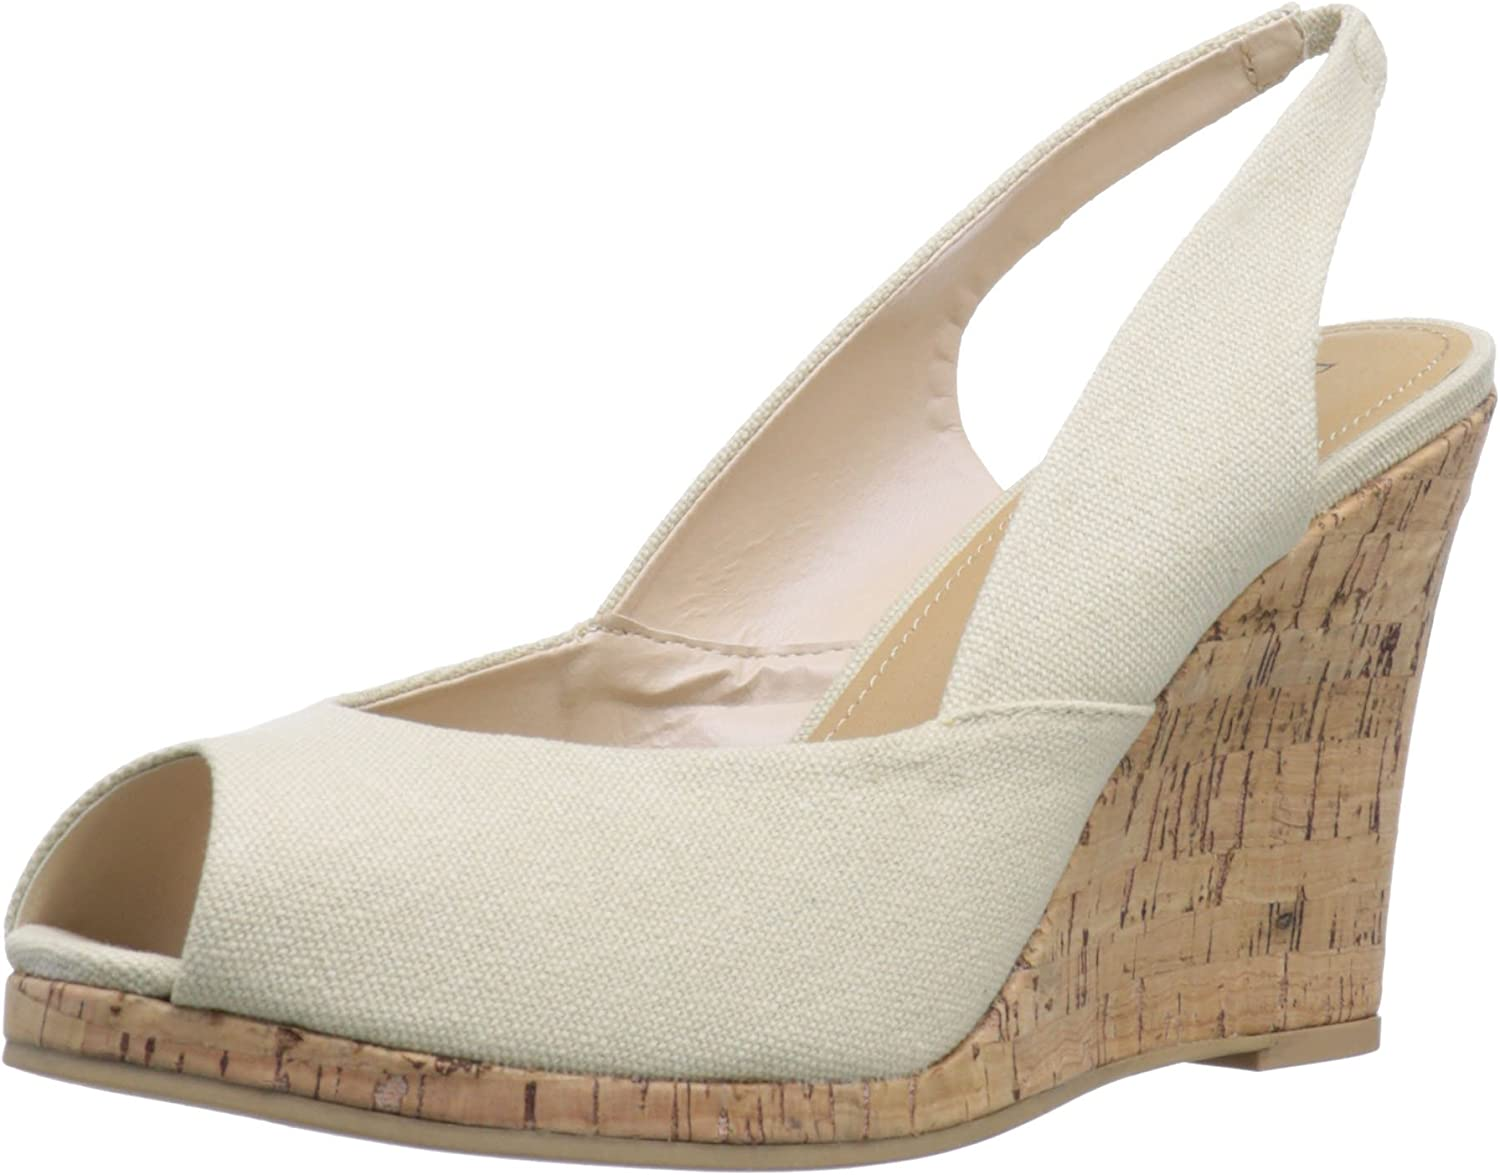 Diba Women's Dream of You Wedge Sandal